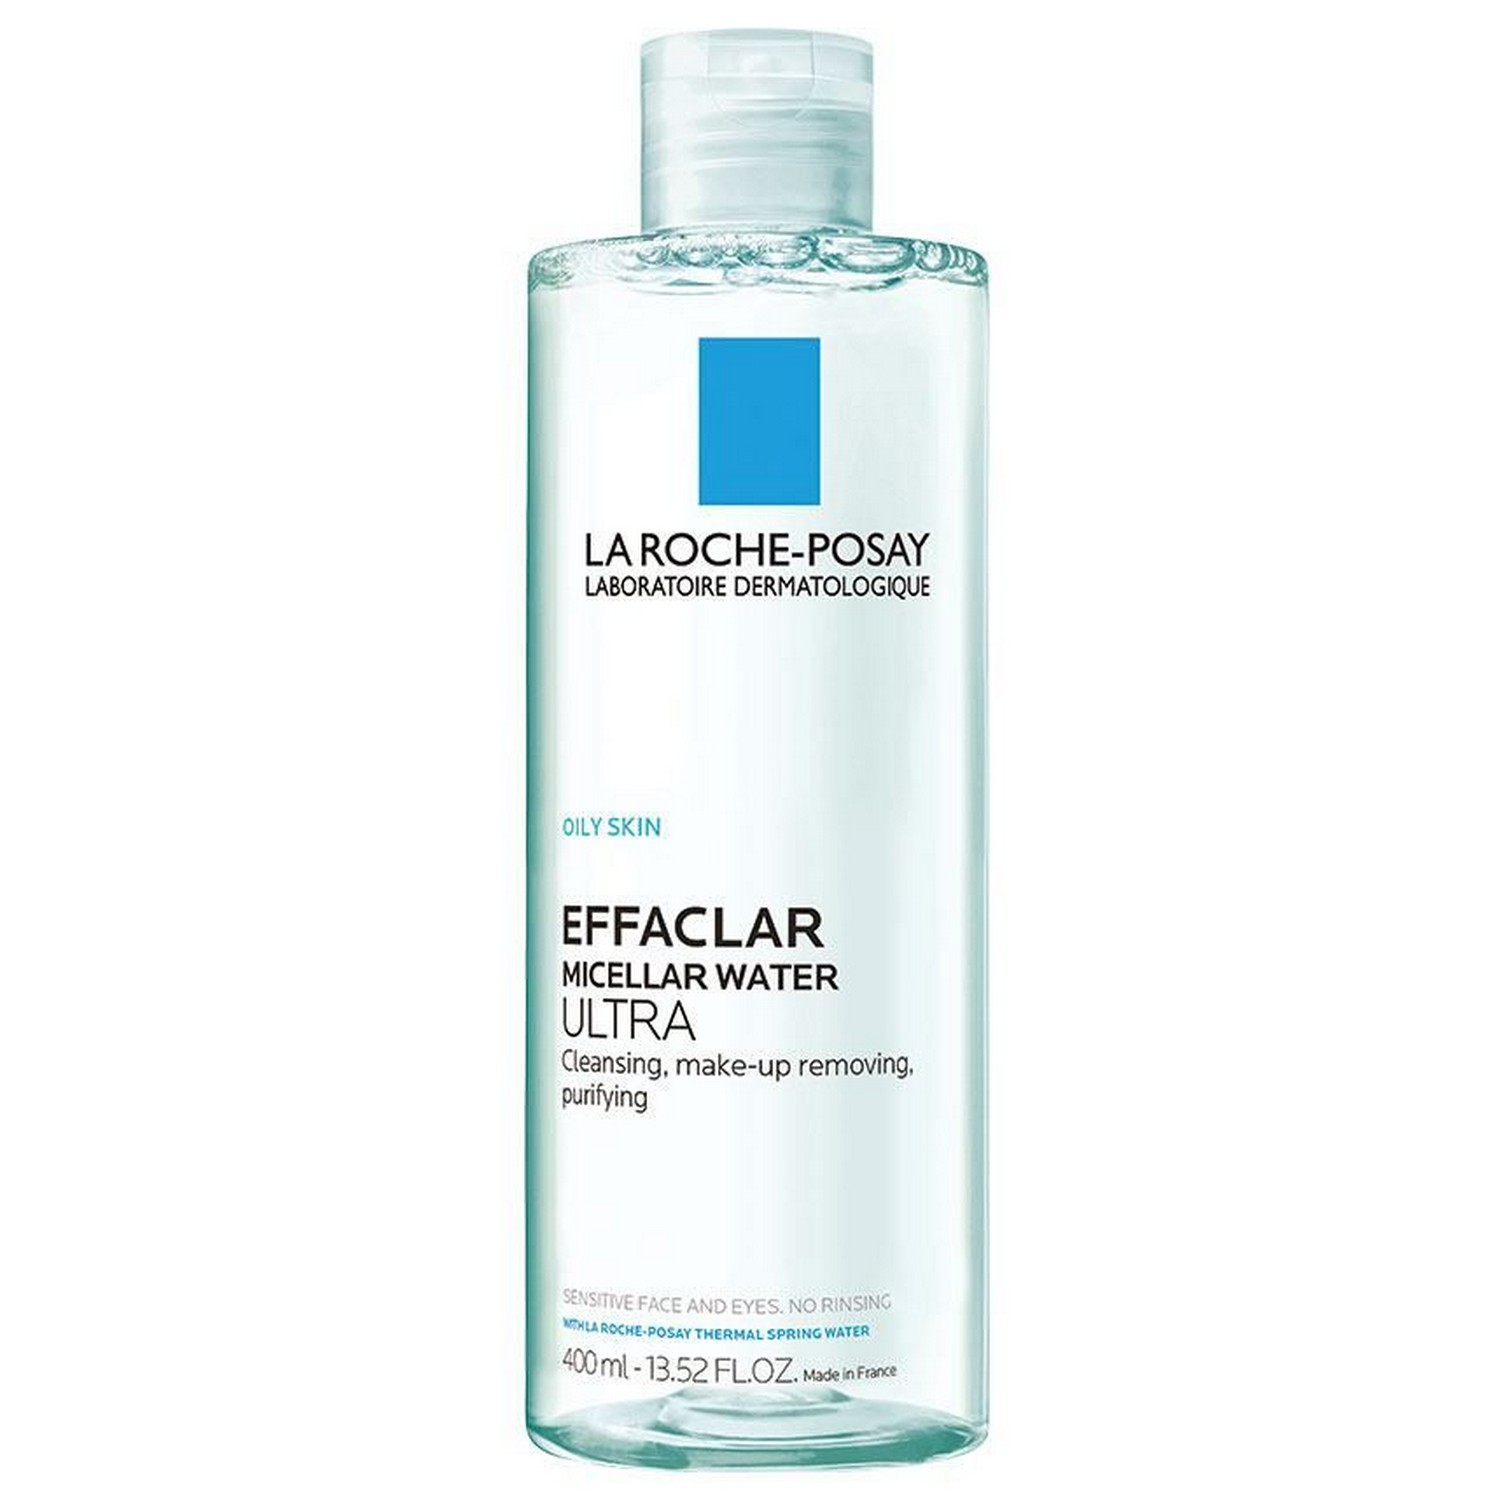 la roche posay effaclar micellar water ultra. Black Bedroom Furniture Sets. Home Design Ideas